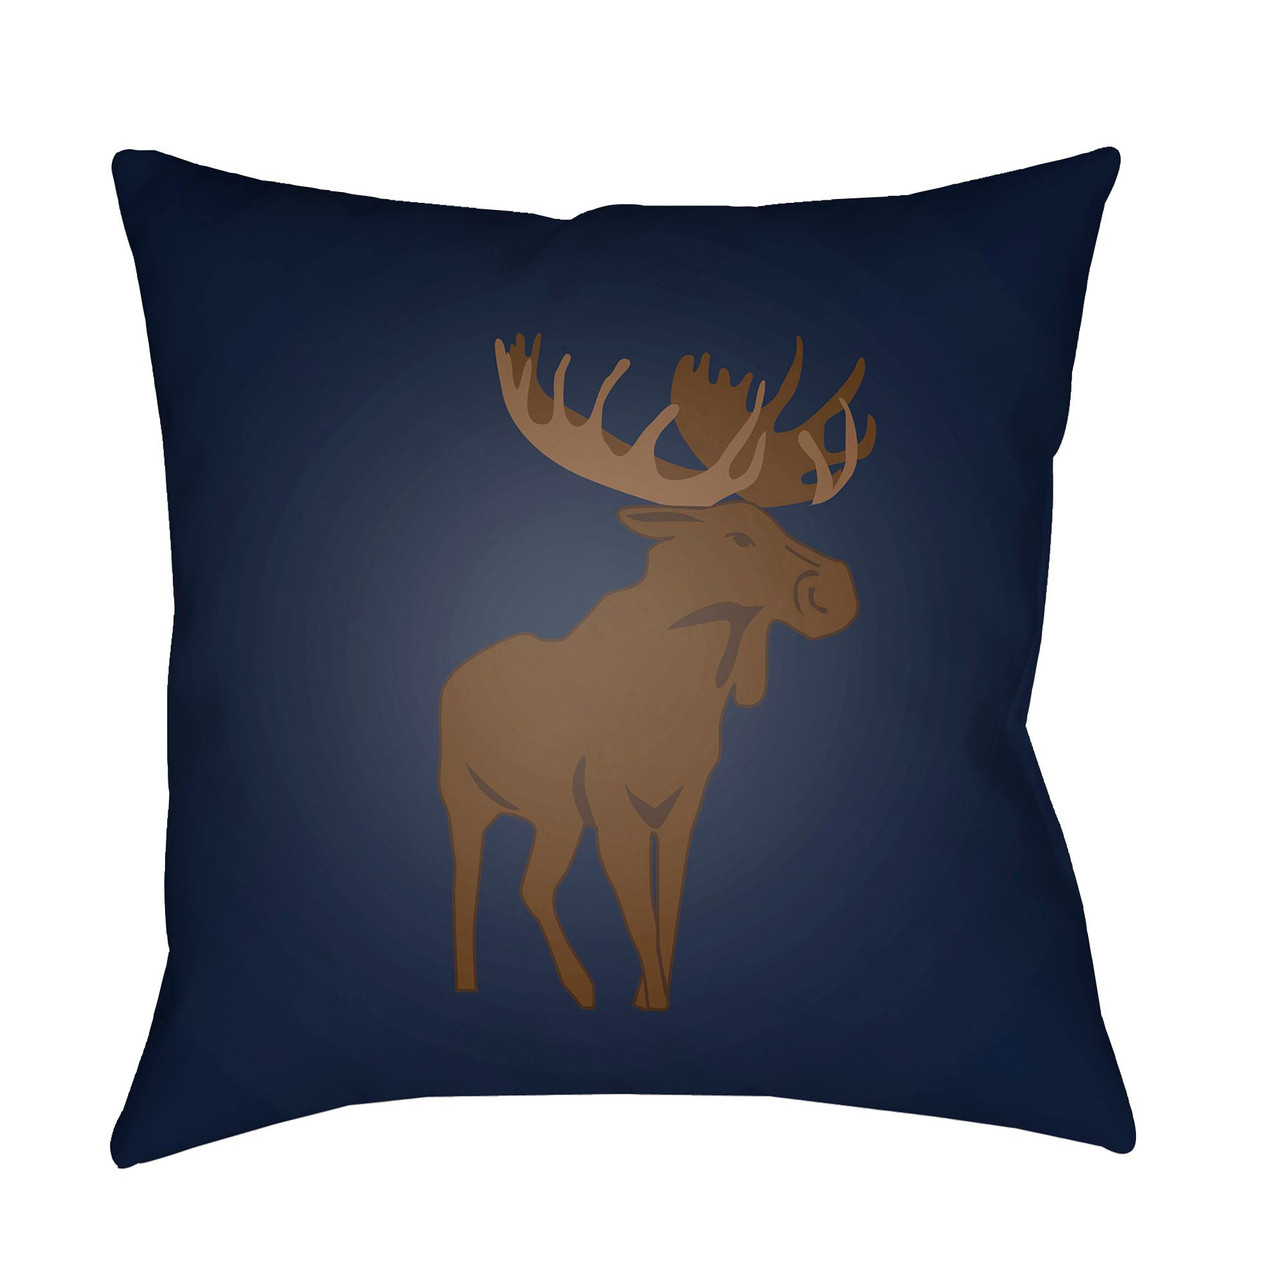 20 Brown Navy Blue Moose Printed Square Throw Pillow Cover Christmas Central